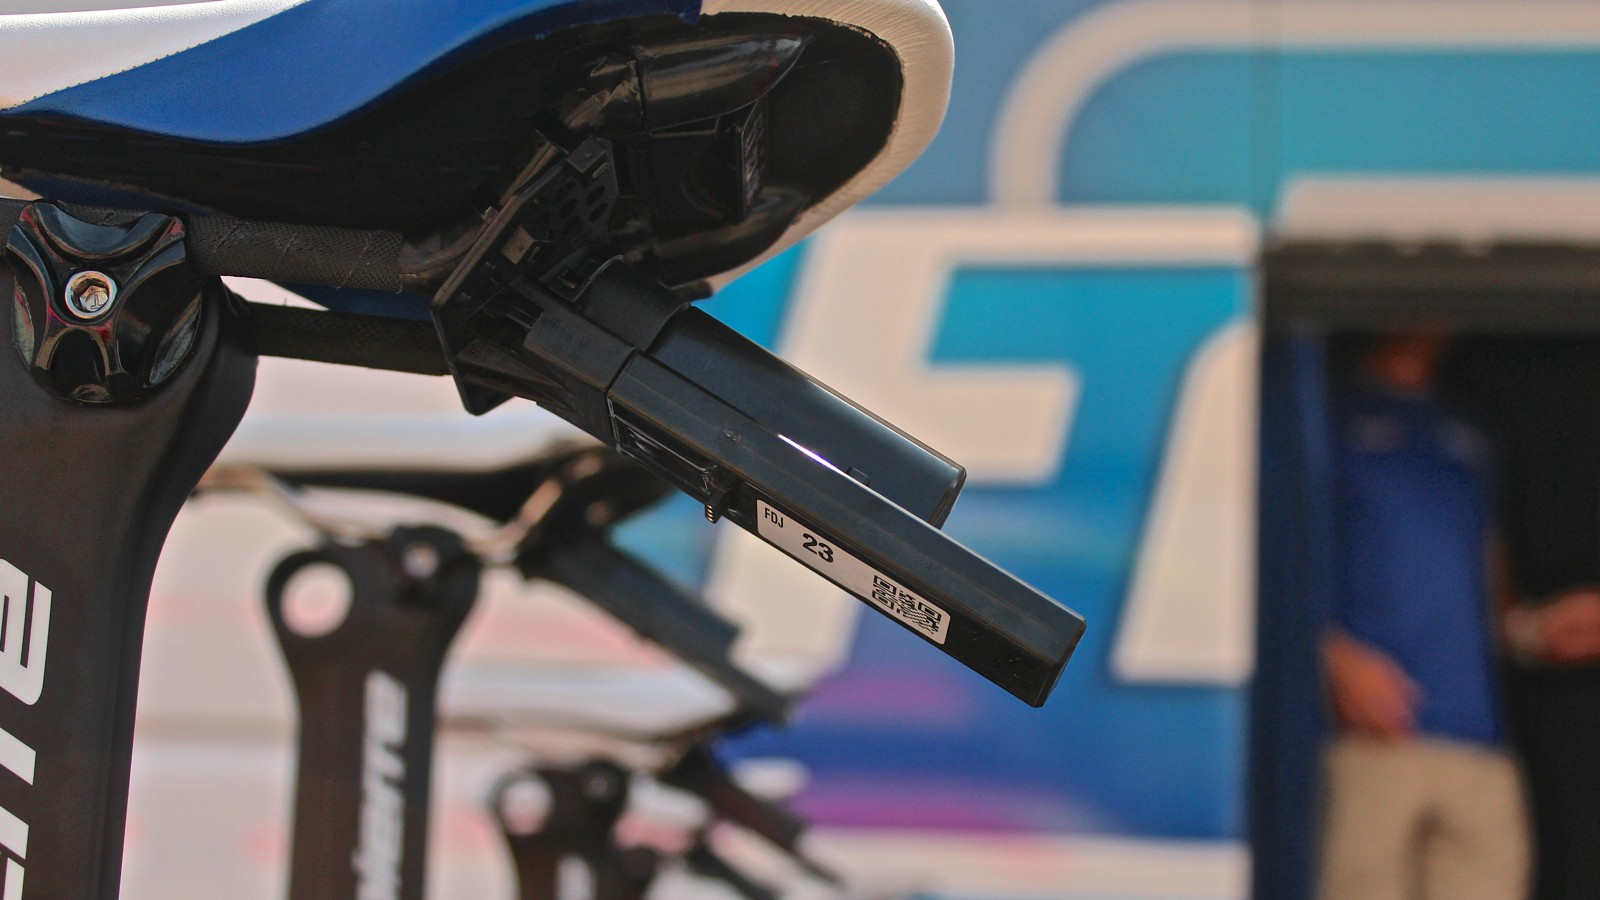 Dimension Data GPS transponders are mounted on every rider's bike at the 2015 Tour de France